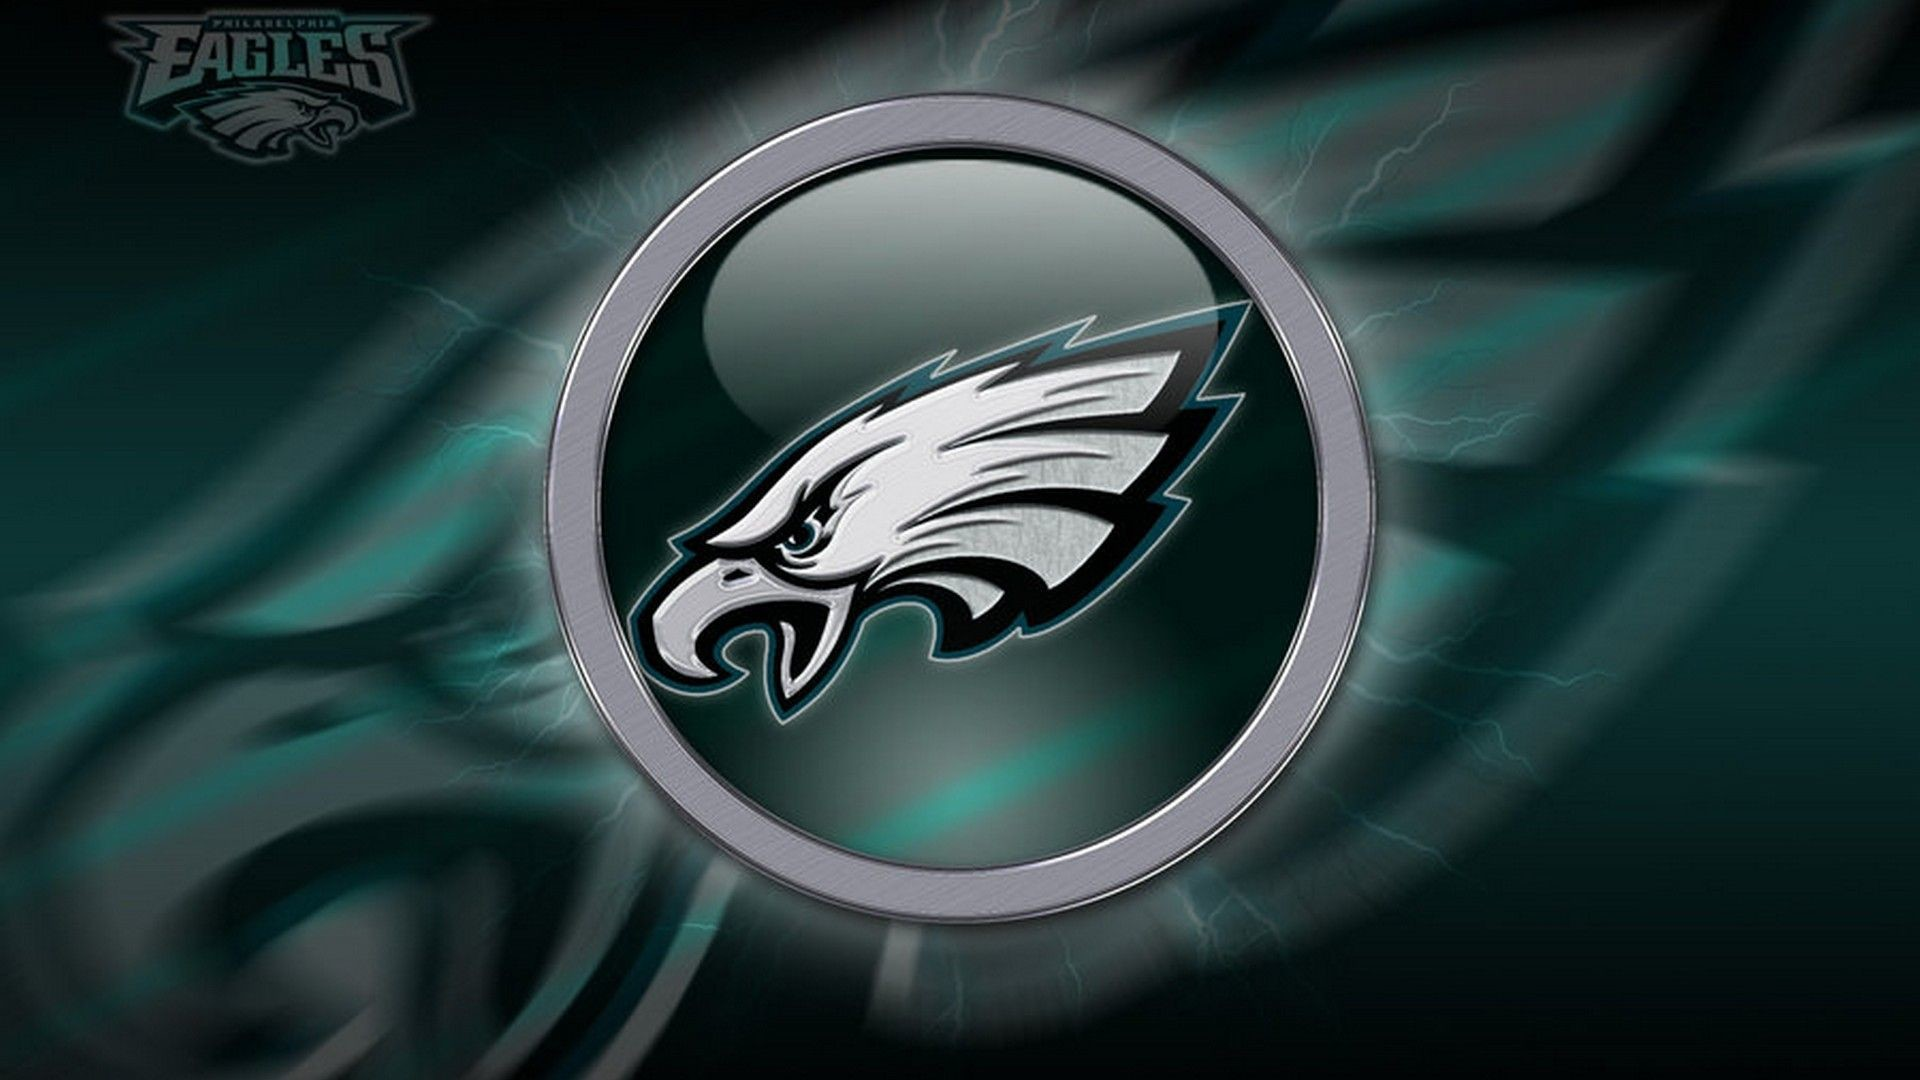 1920x1080 Wallpapers HD Eagles Football | Best NFL Wallpapers